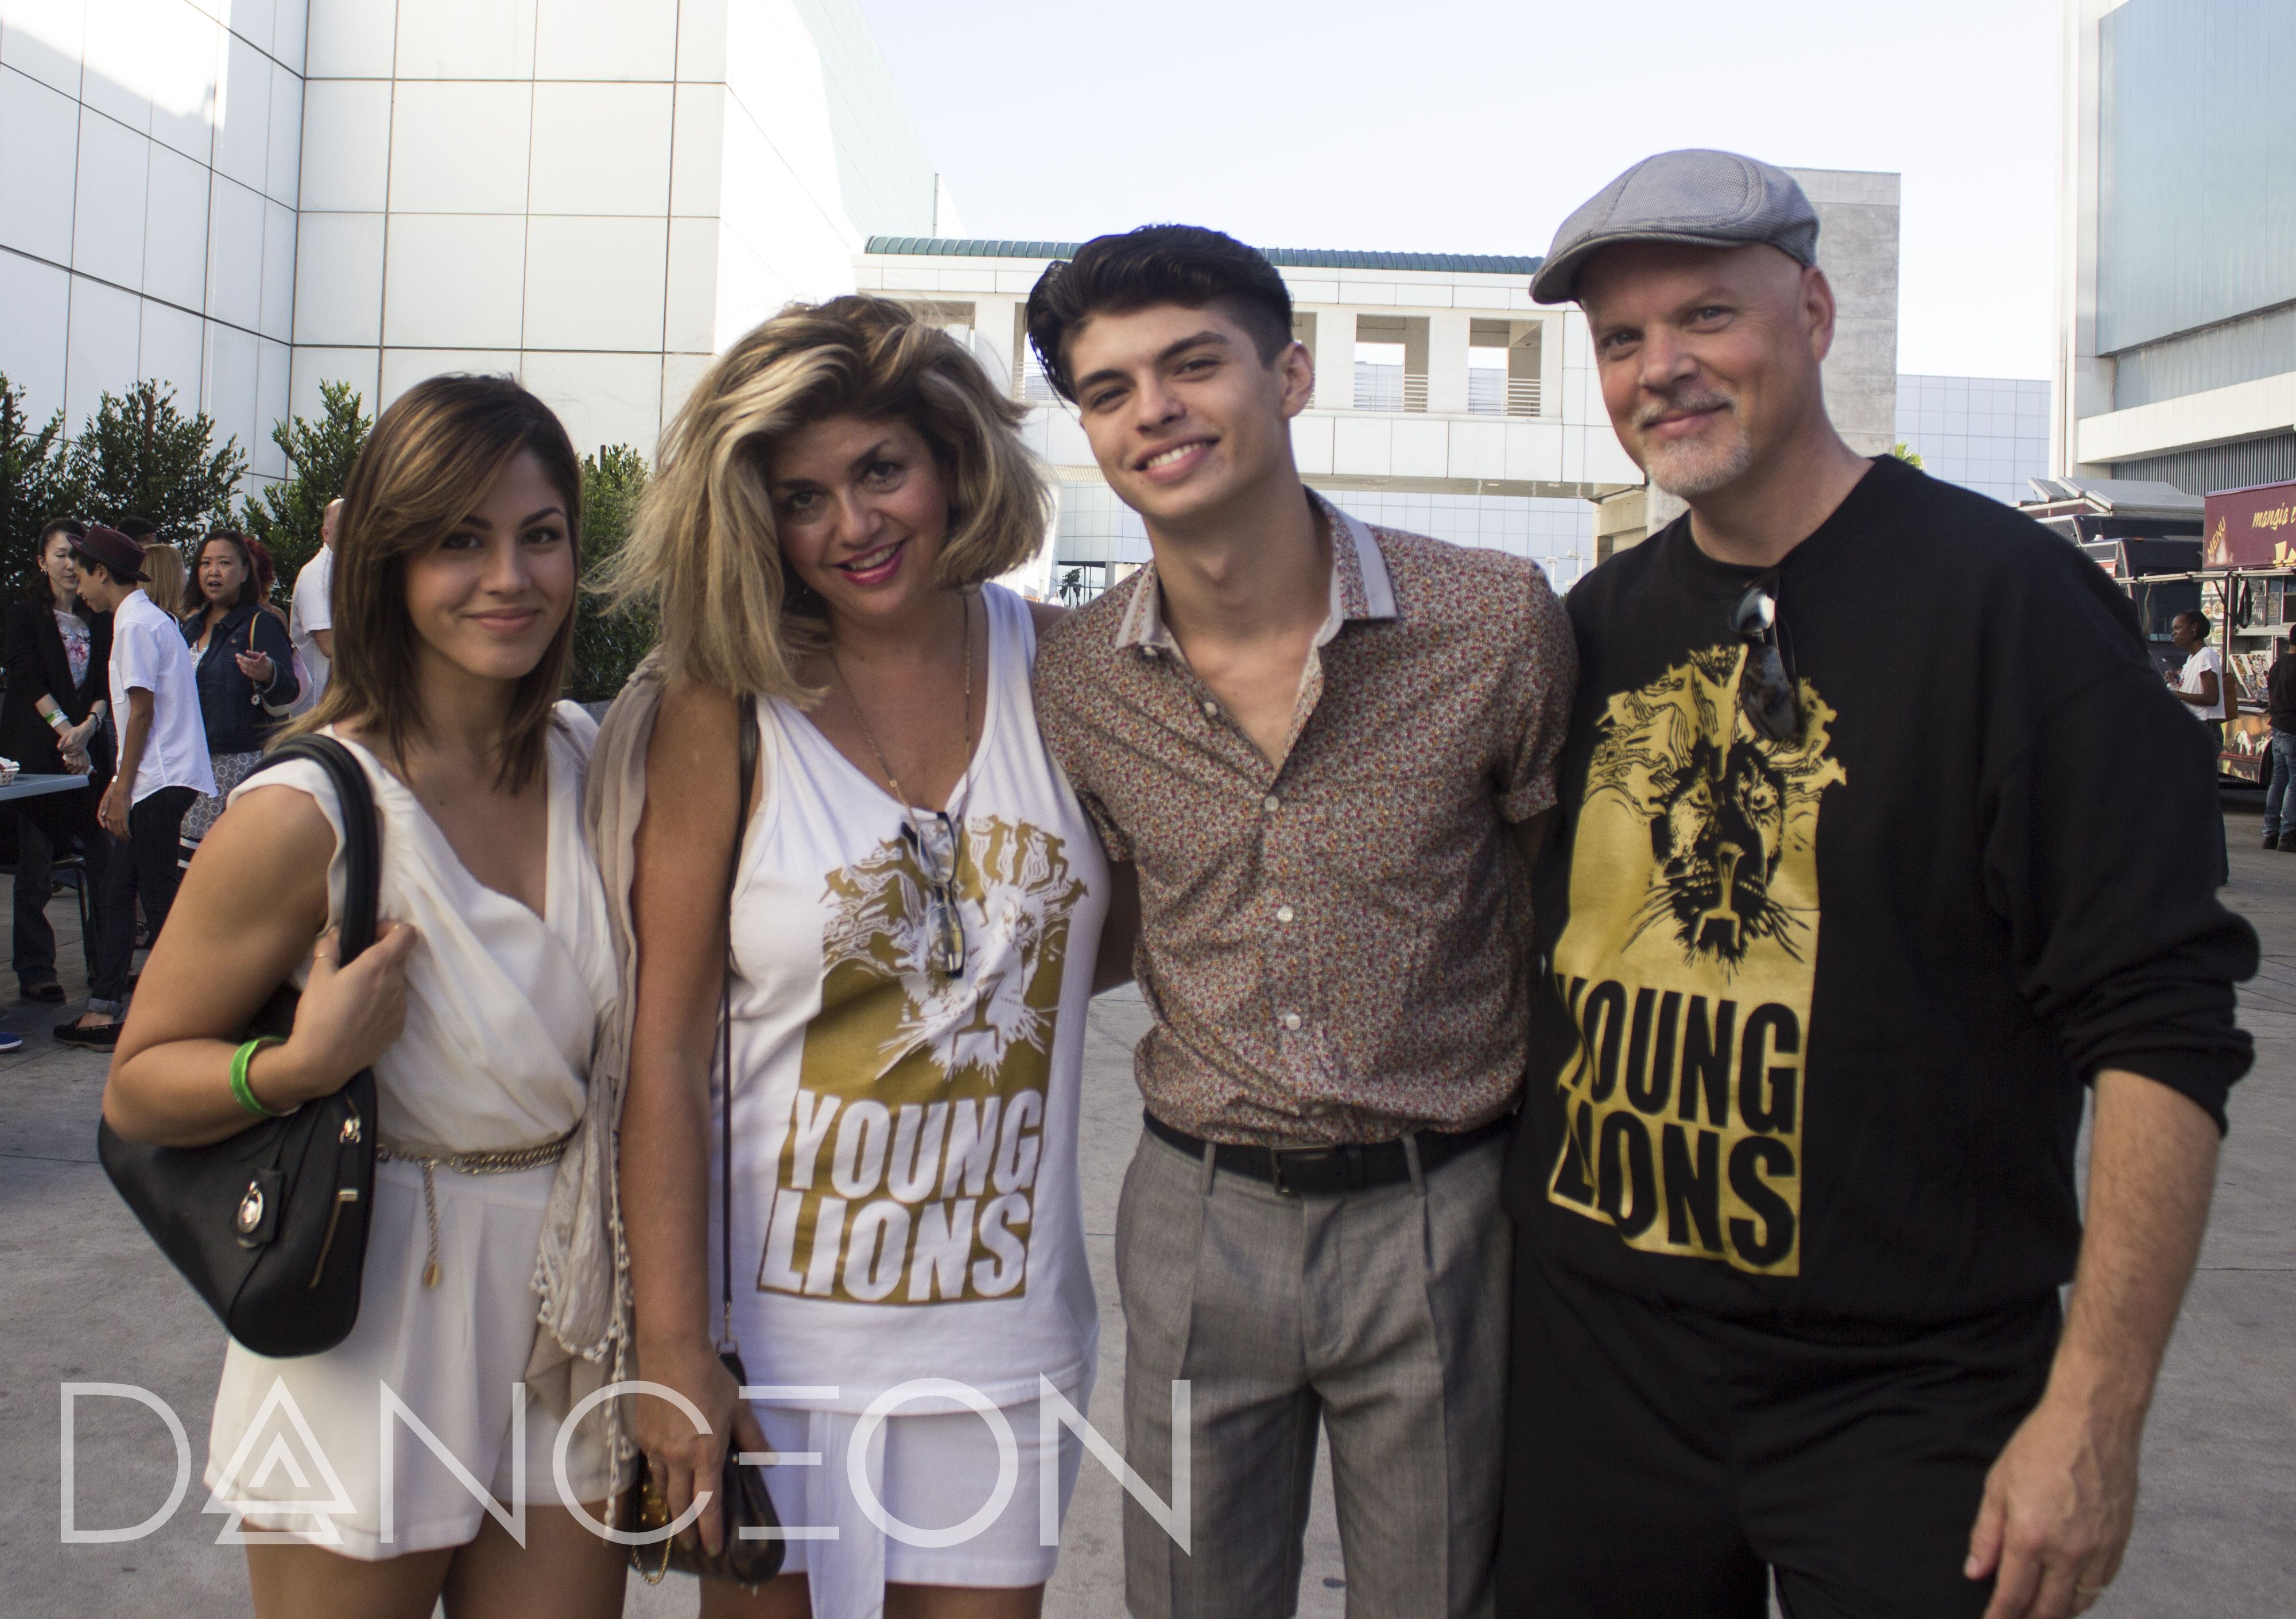 megan batoon and ian eastwood relationship trust